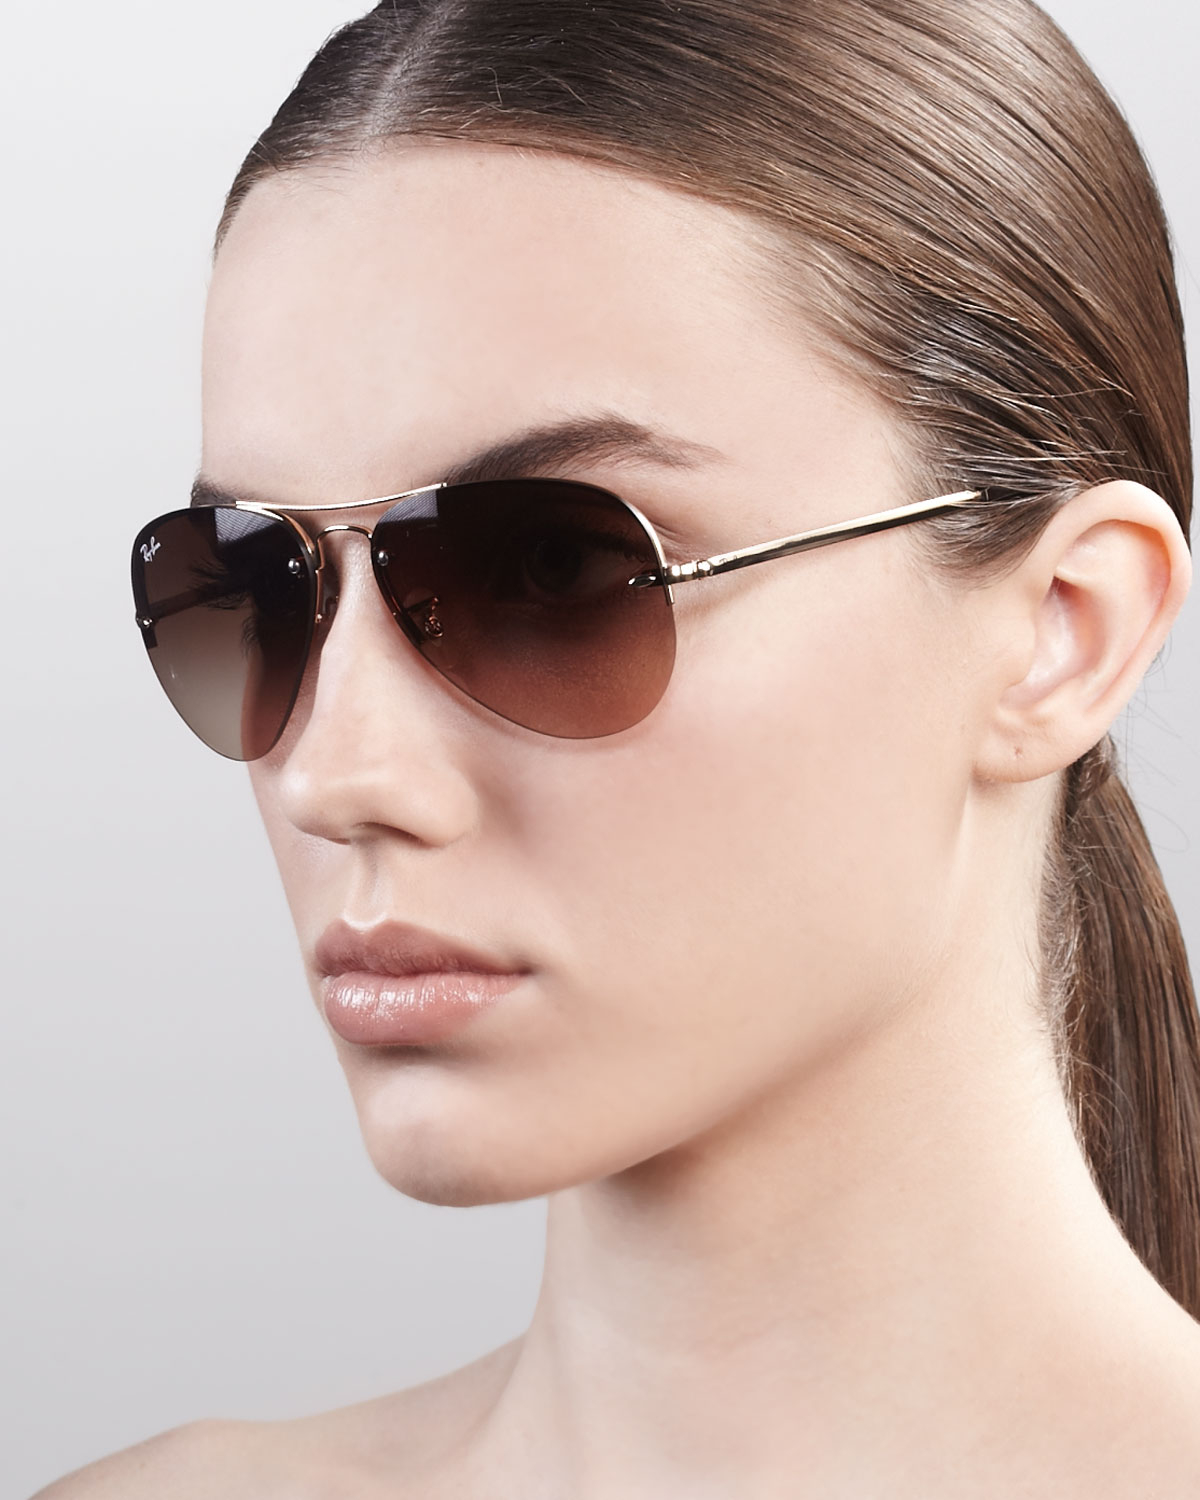 Original Aviator Sunglasses  ray ban original aviator sunglasses in metallic lyst